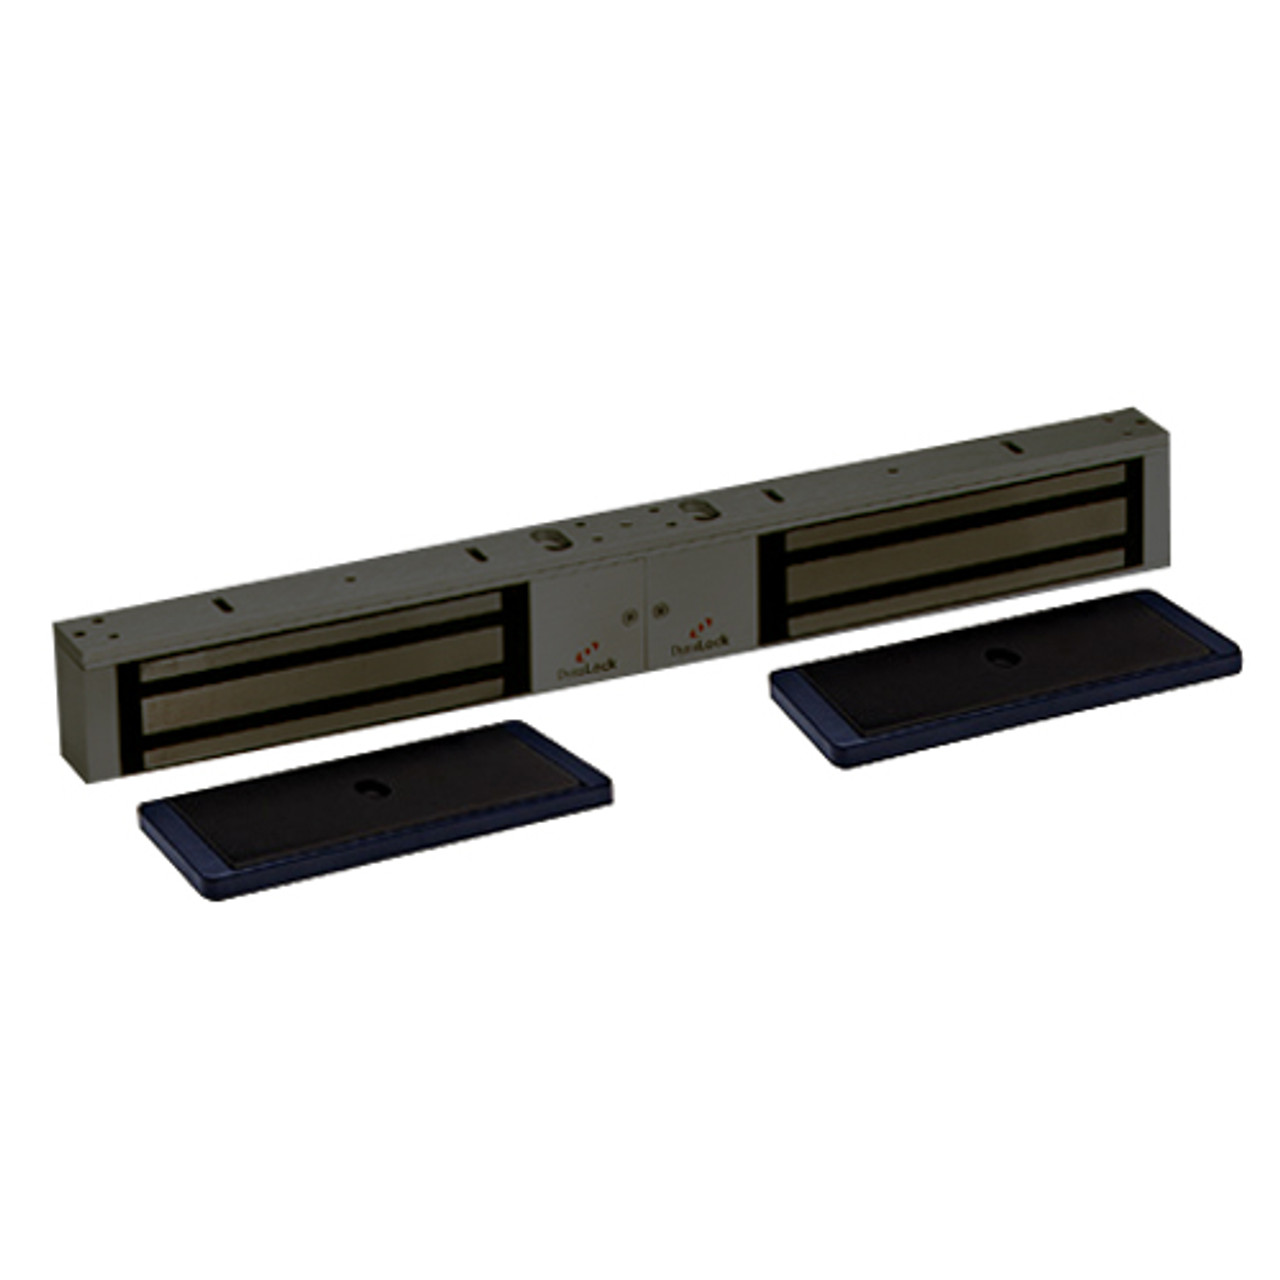 2022-US10B-HSM2 DynaLock 2000 Series 1200 LB Holding Force Double Electromagnetic Lock with High Security Monitor in Oil Rubbed Bronze